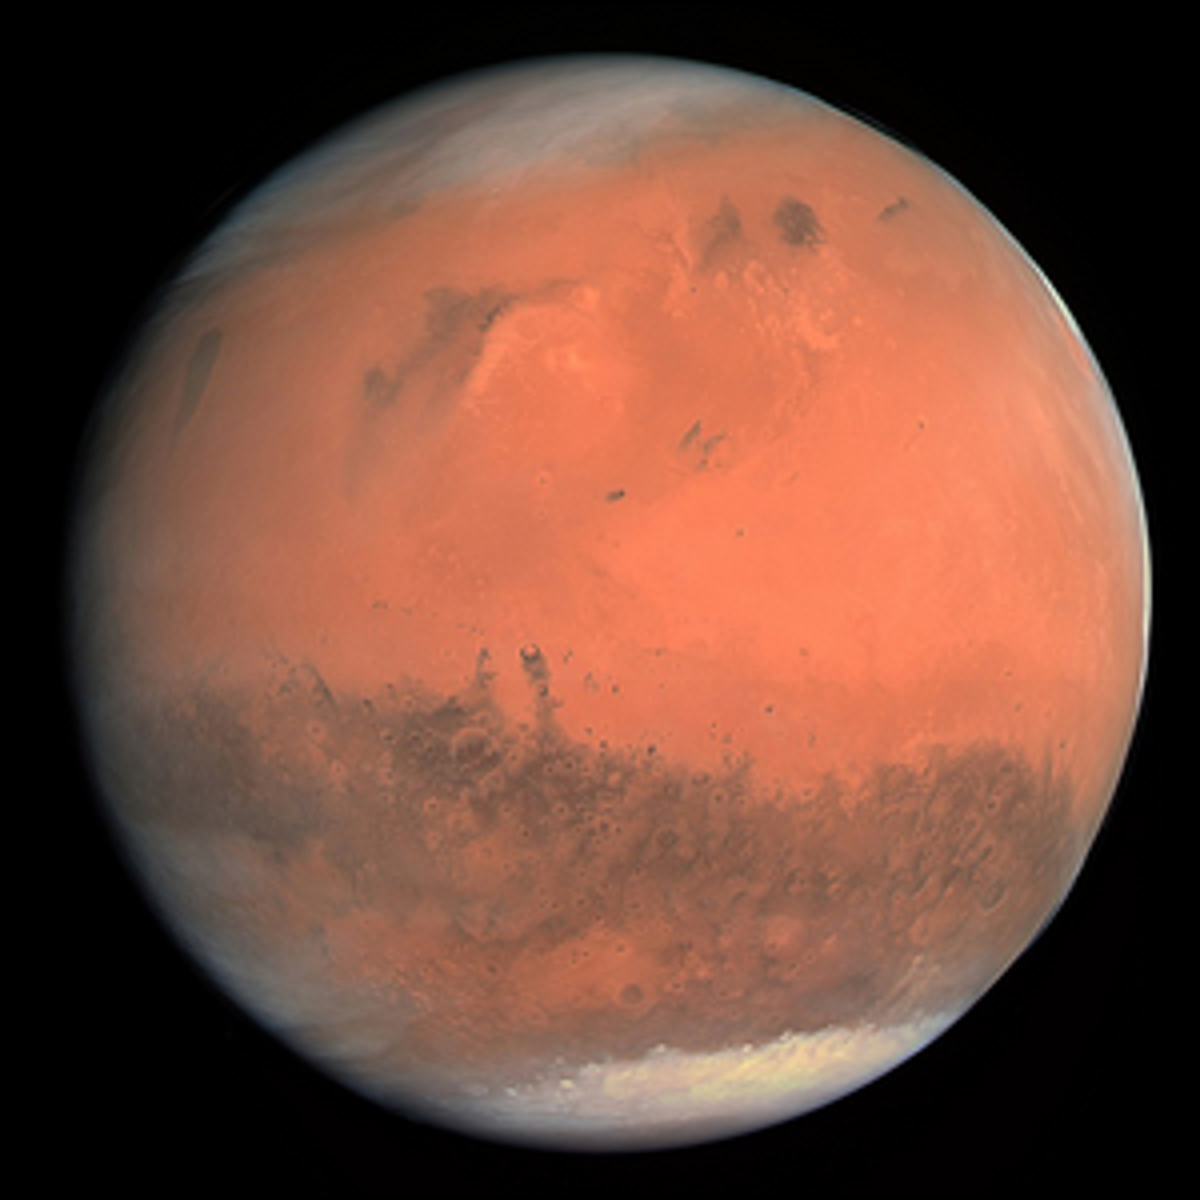 A true color image of Mars taken by the ESA Rosetta spacecraft.